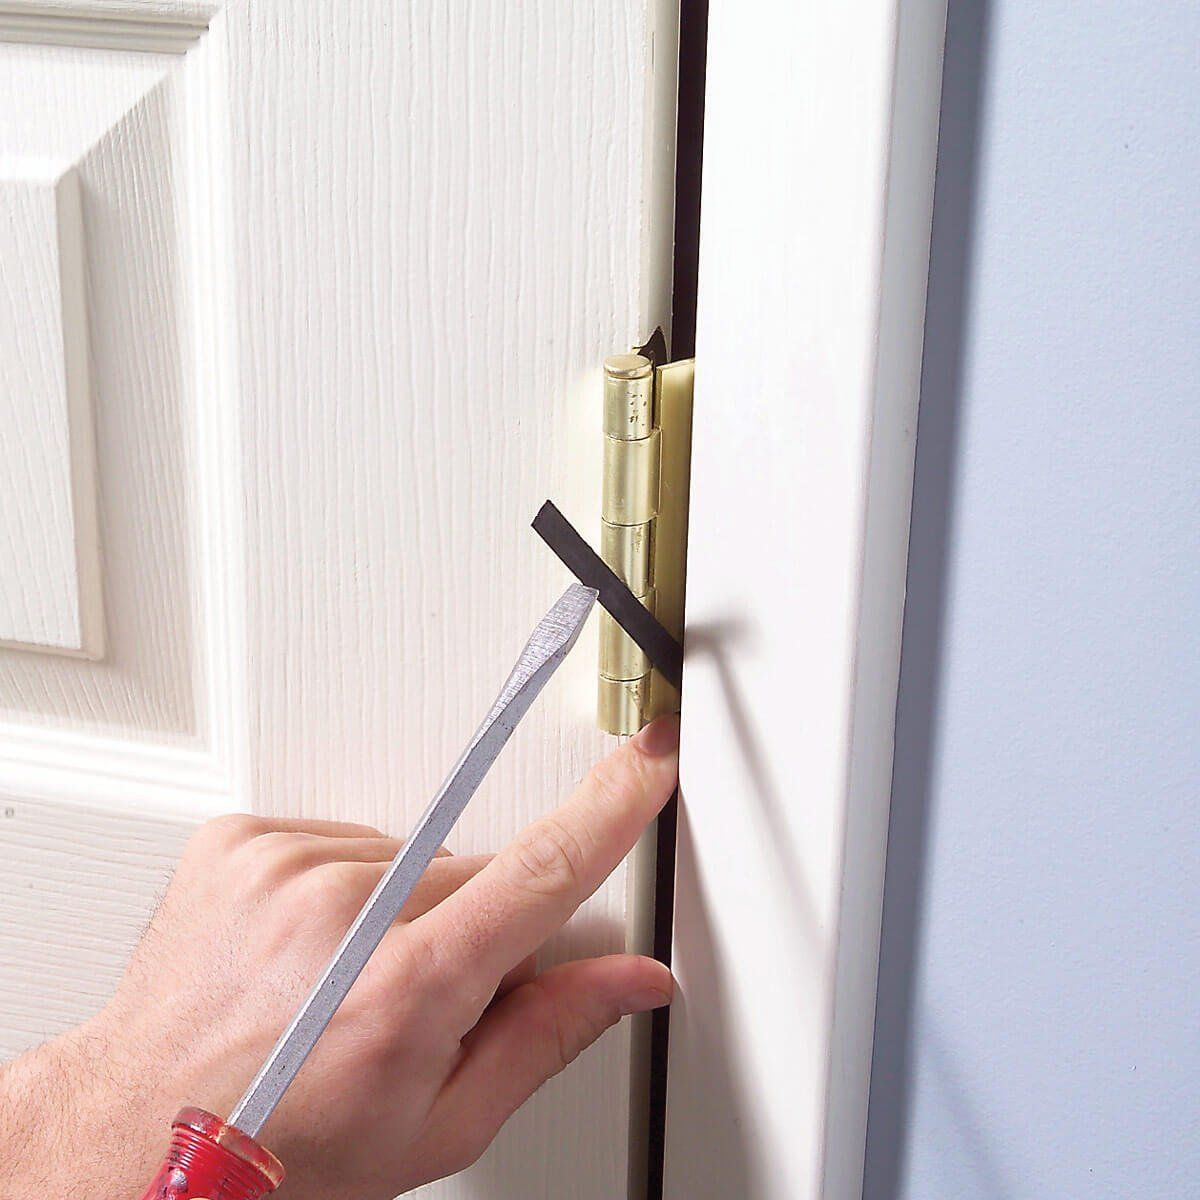 How To Shim Gapping Doors Diy Home Repair Home Improvement Projects Home Repairs